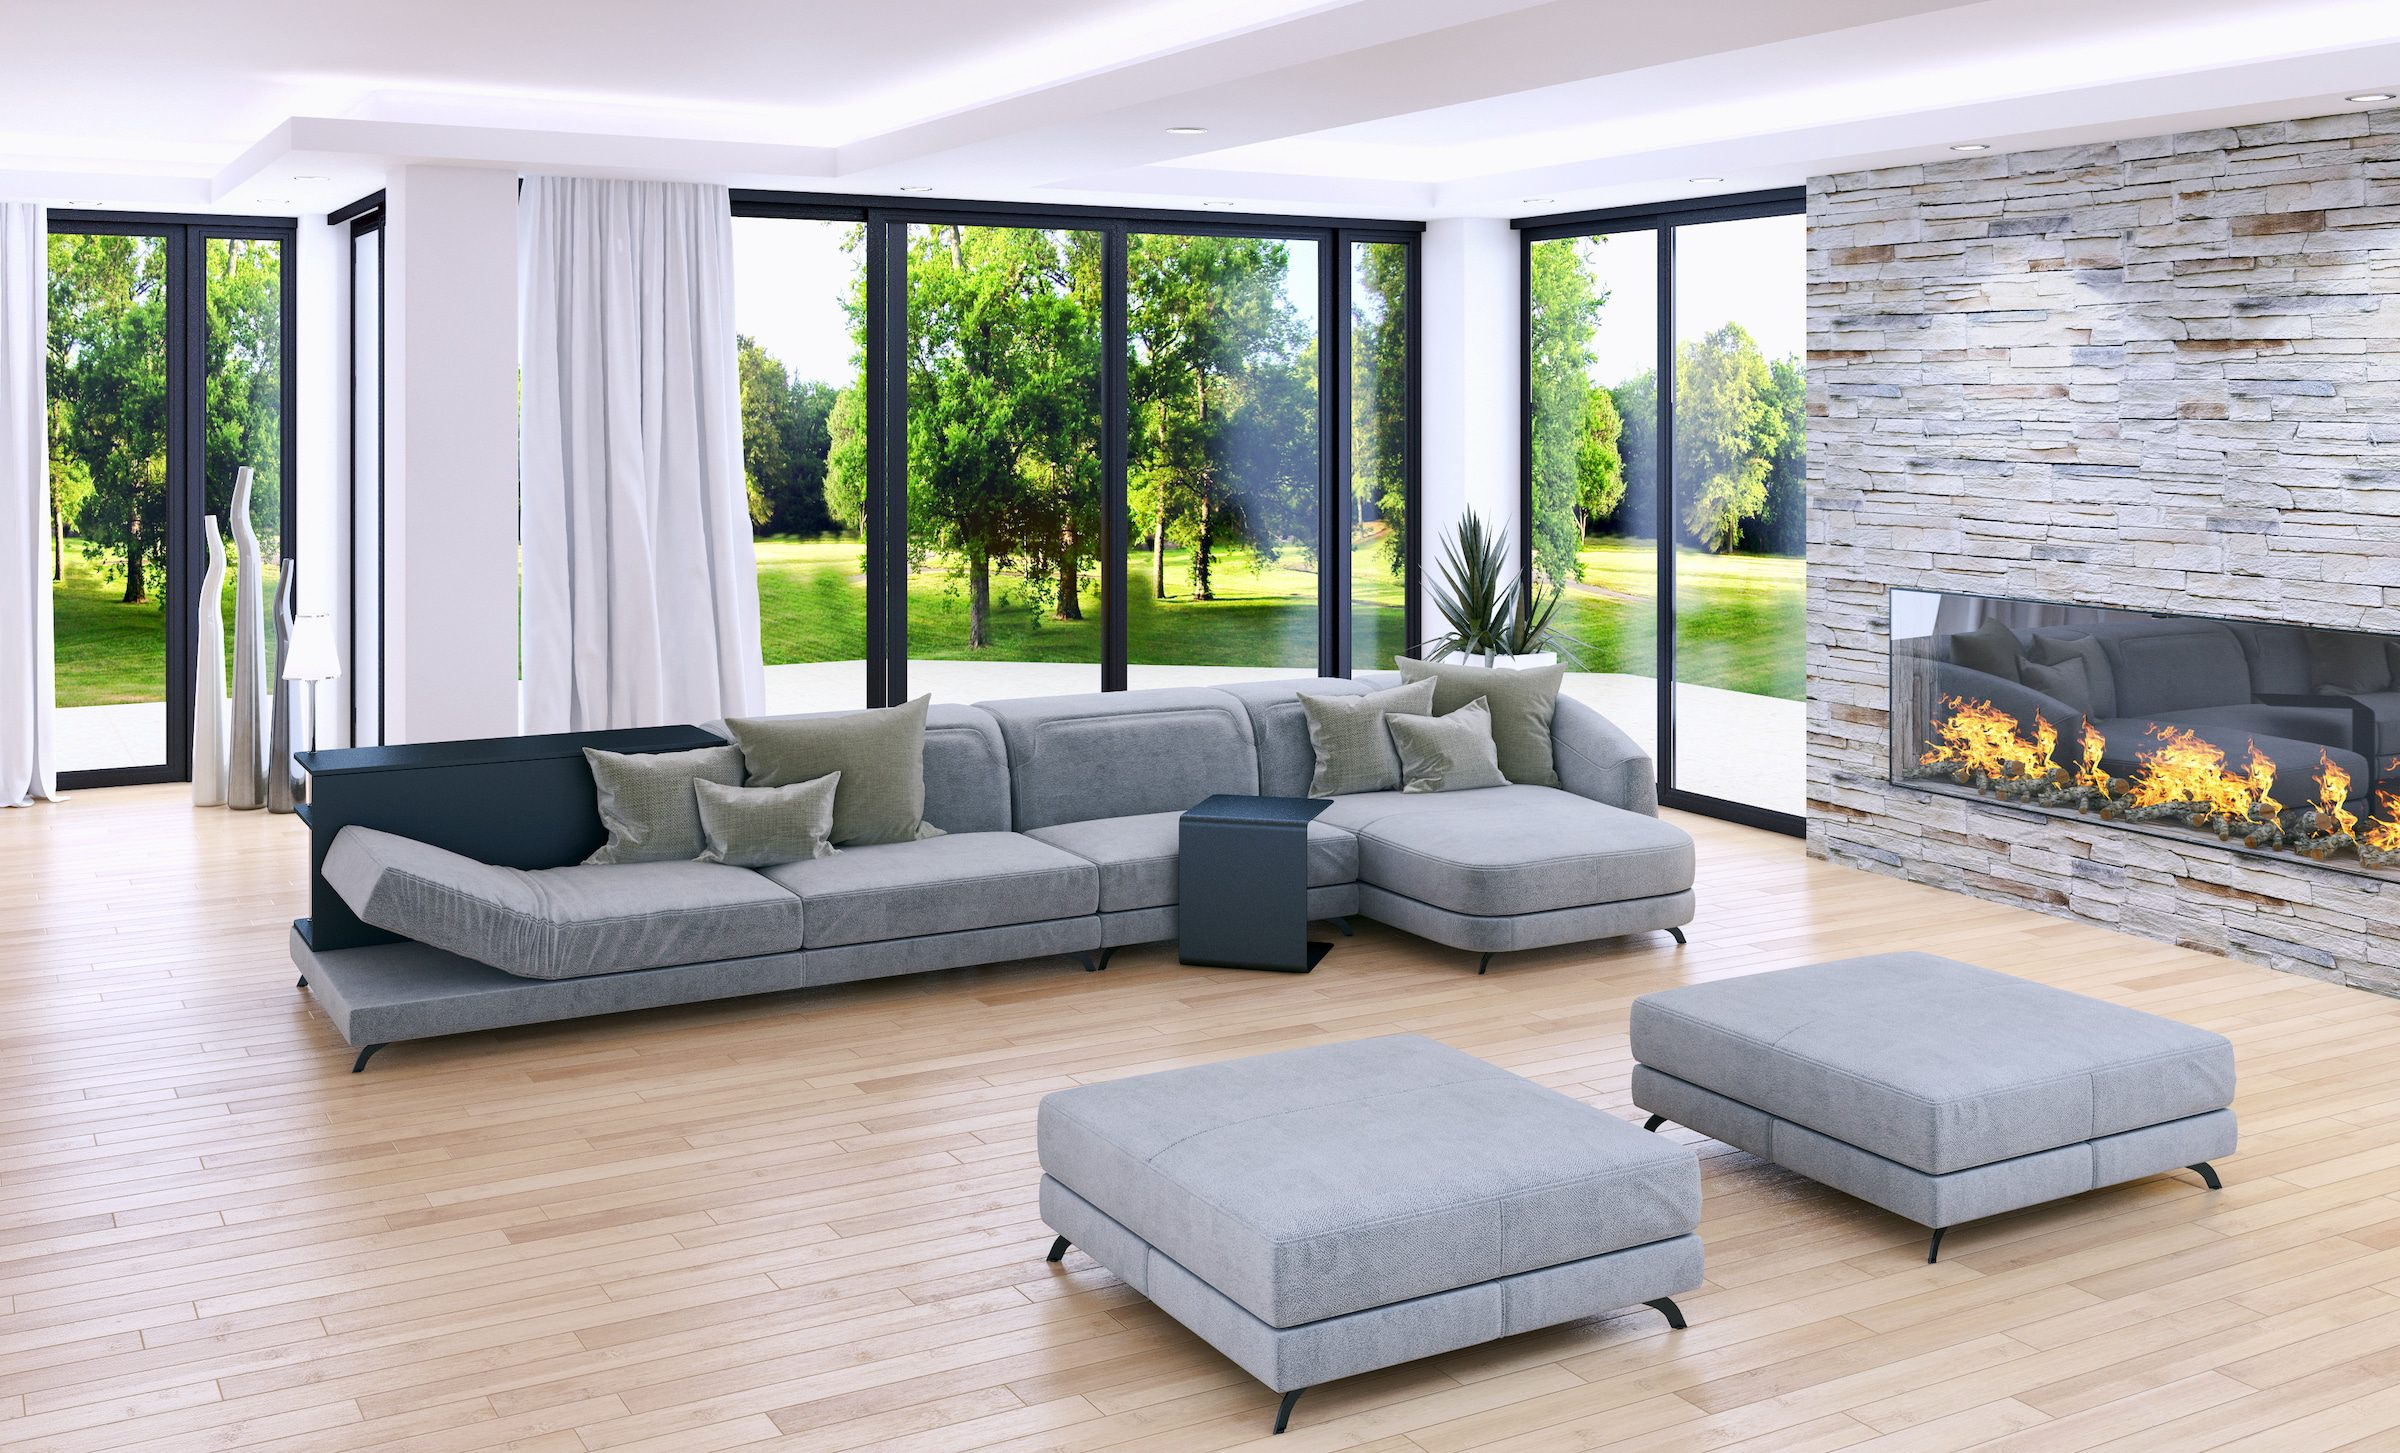 french doors, sliding doors or bifolding doors shown in a large sitting room